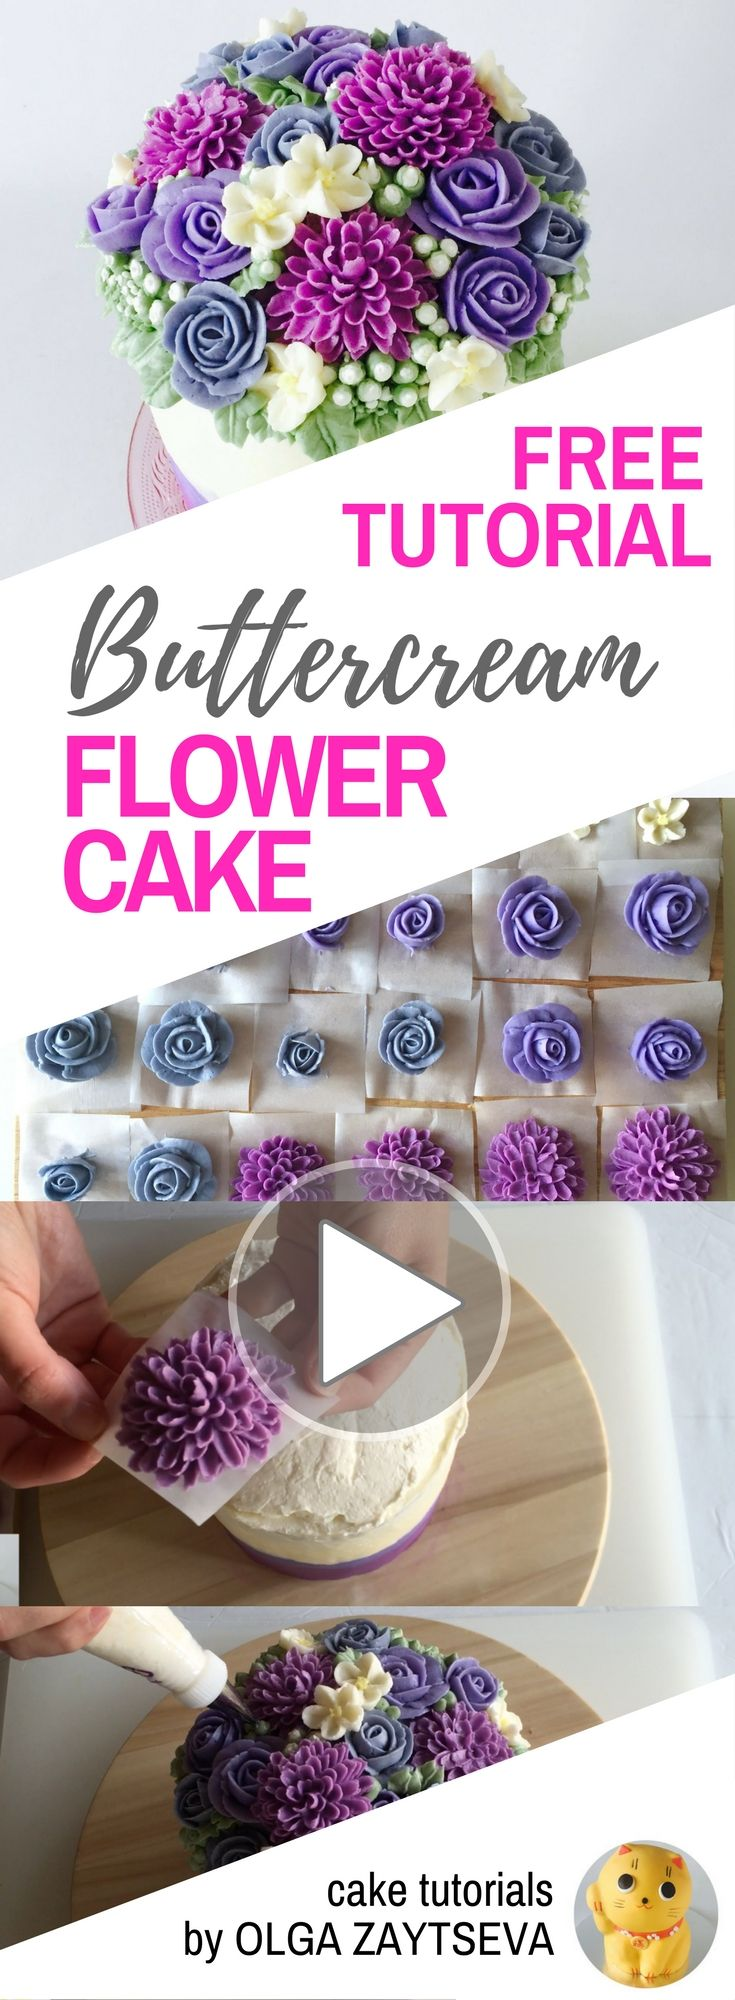 Learn how to make very trendy buttercream dahlia, roses and blossoms, and create this gorgeous flower cake. In variety of purple shades, this stunning floral cake perfectly suits any memorable party. Also you will learn how to layer and frost tall cake with perfectly smooth sides and create buttercream ombre effect.